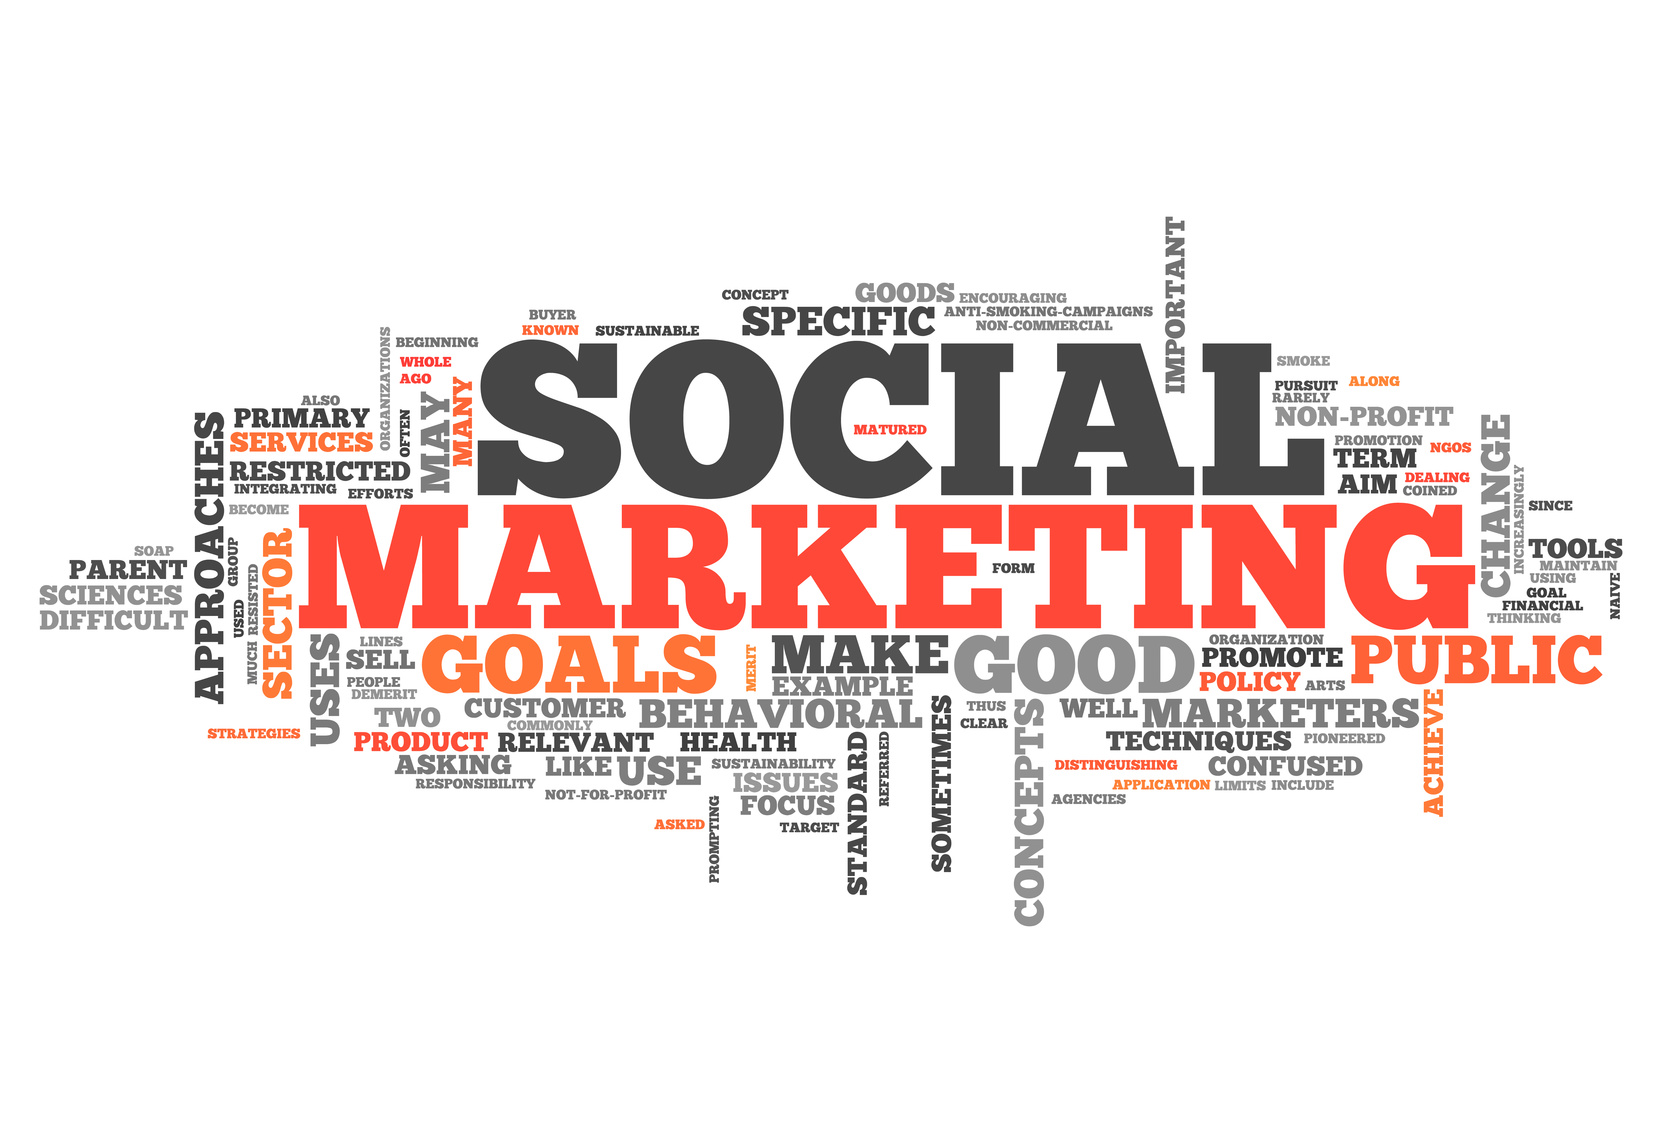 autoketing-marketing-idea-social-platforms-3